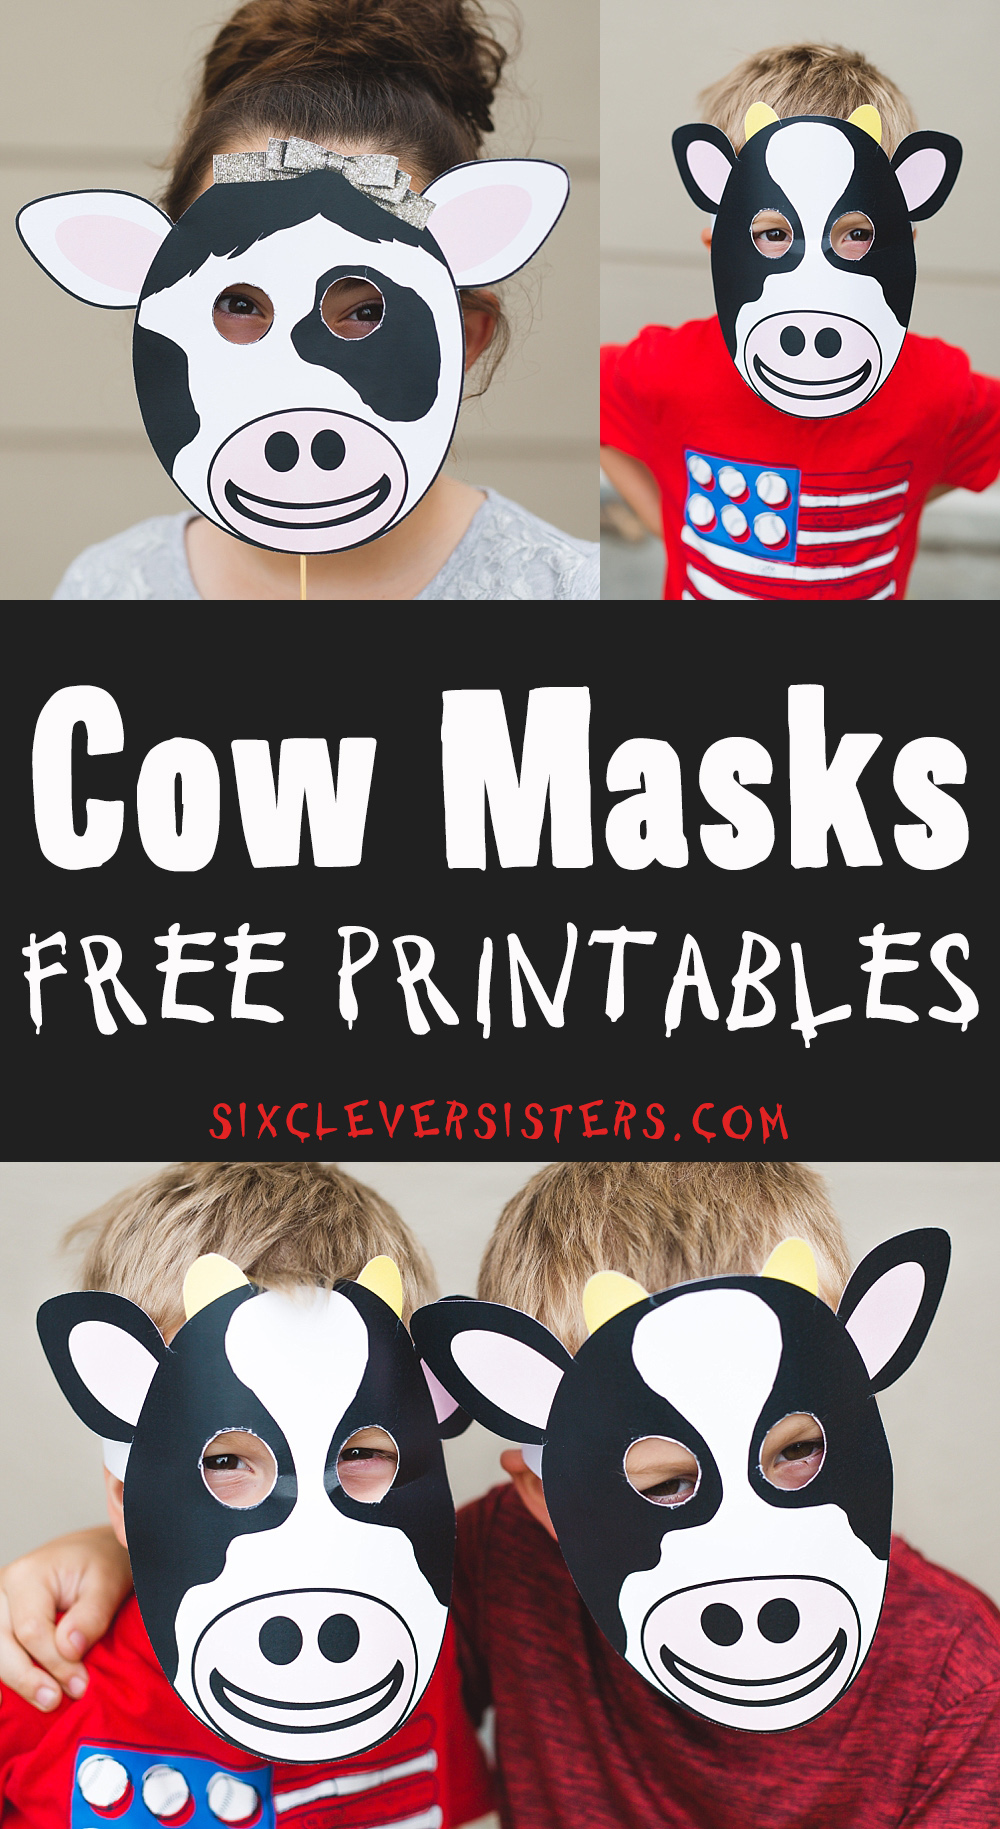 image relating to Cow Mask Printable referred to as Chick Fil A Cow Mask - 6 Good Sisters